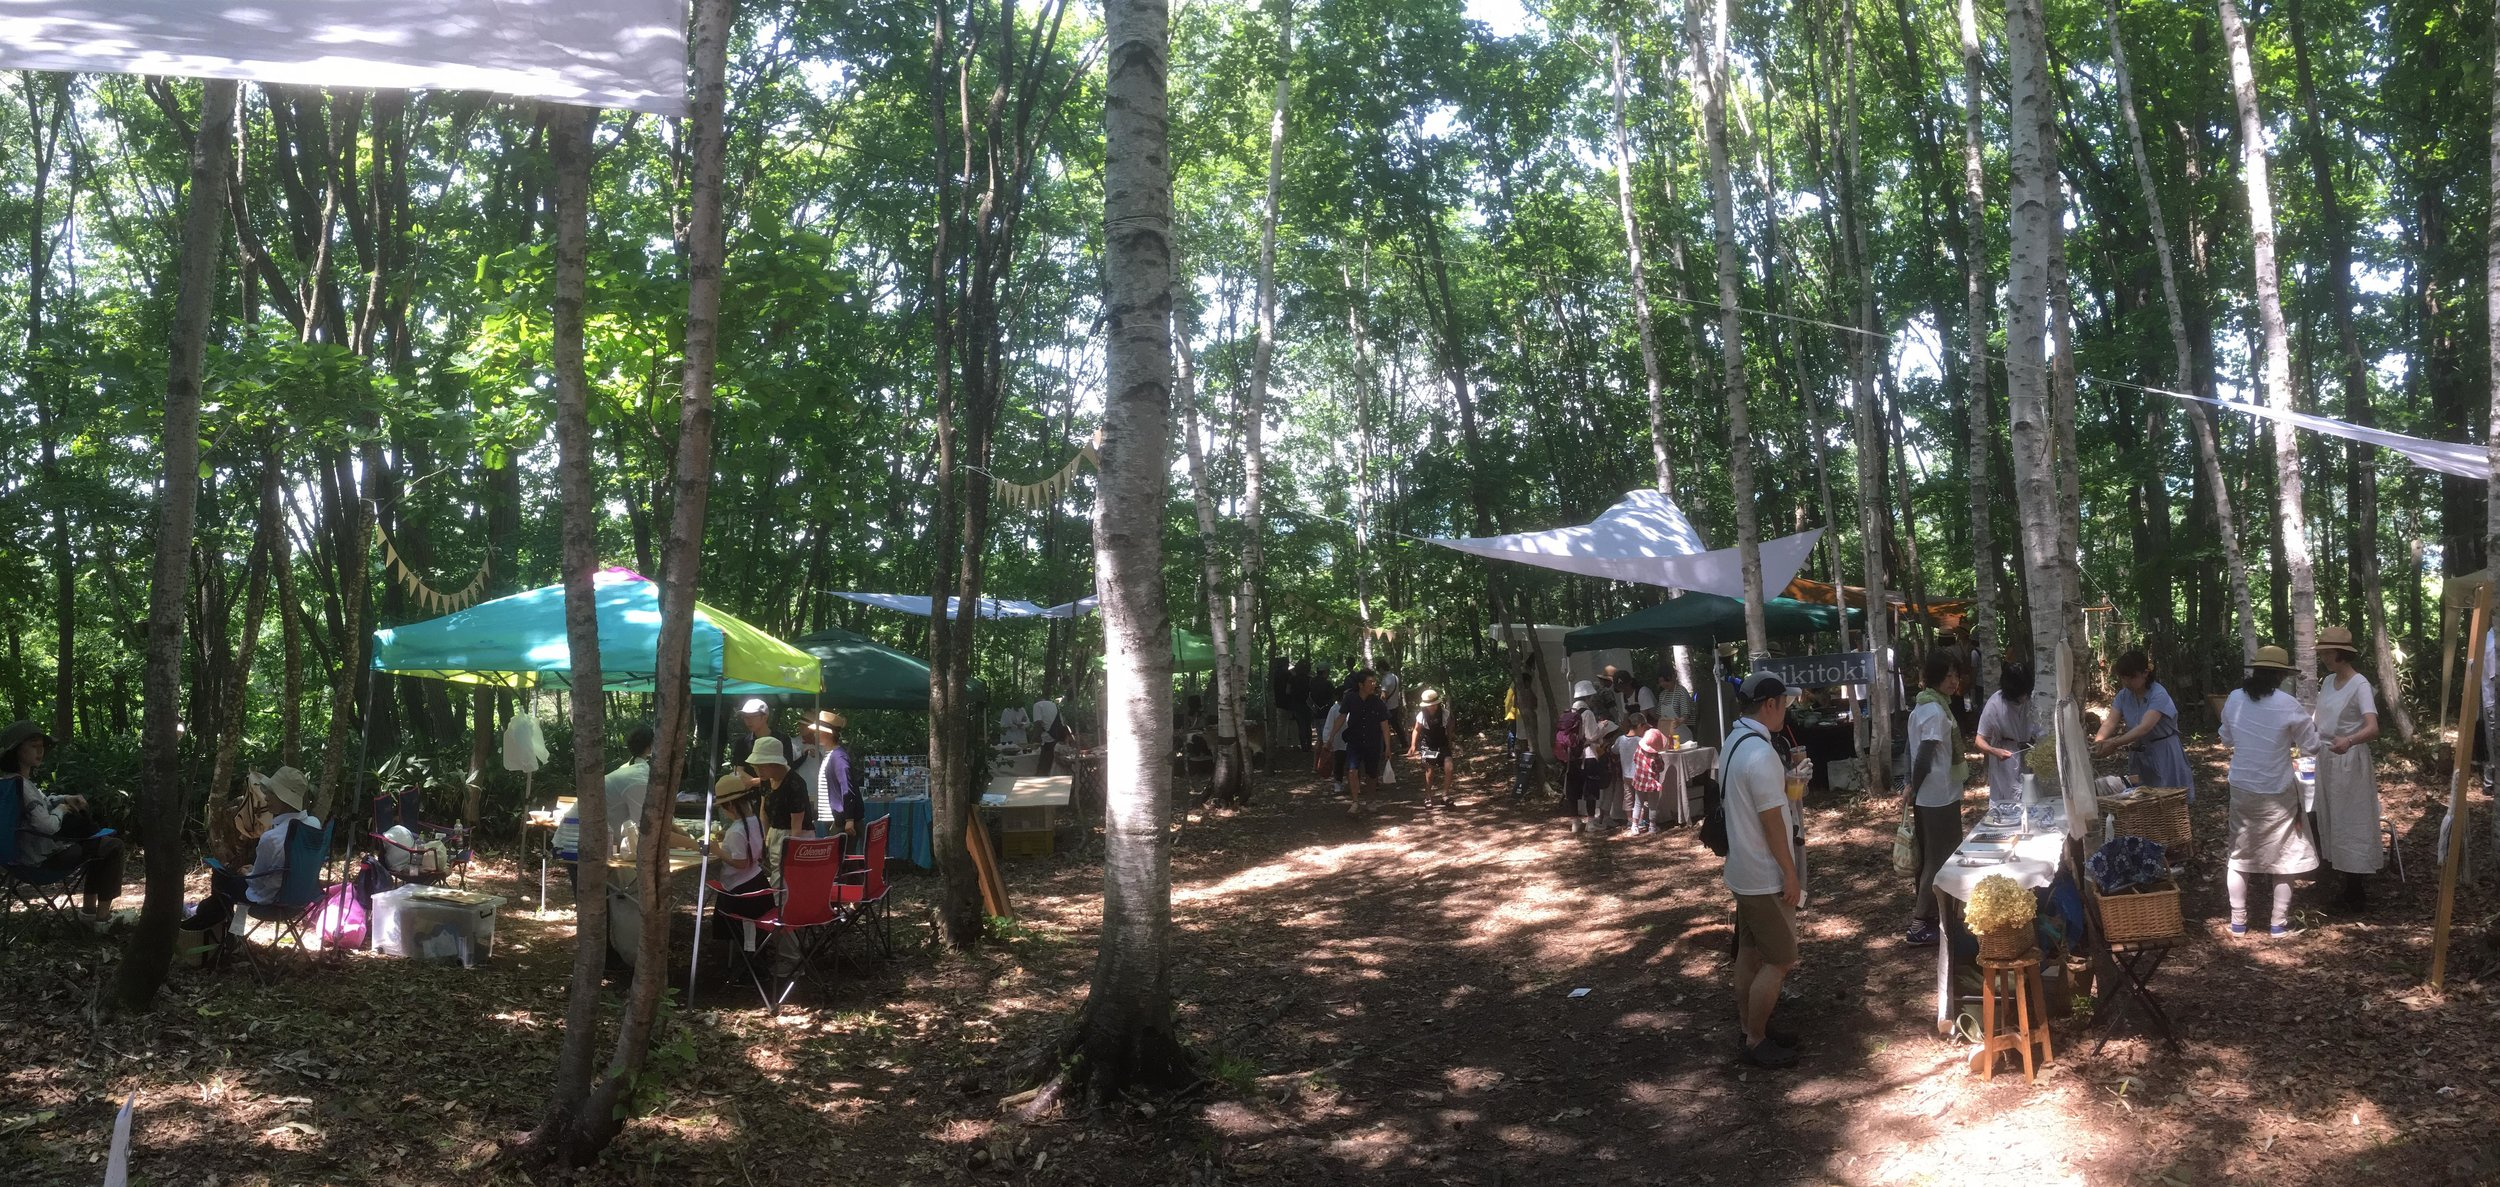 """Mori Jam is an annual """"picnic in the forest"""" in Shimokawa, where locals set up stalls selling food and accessories in the forests. Chill on a lazy summer afternoon listening to music and the birds chirping.  Mori Jam will take place on July 7 and 8 this year (2018).   http://morijam.tumblr.com/"""